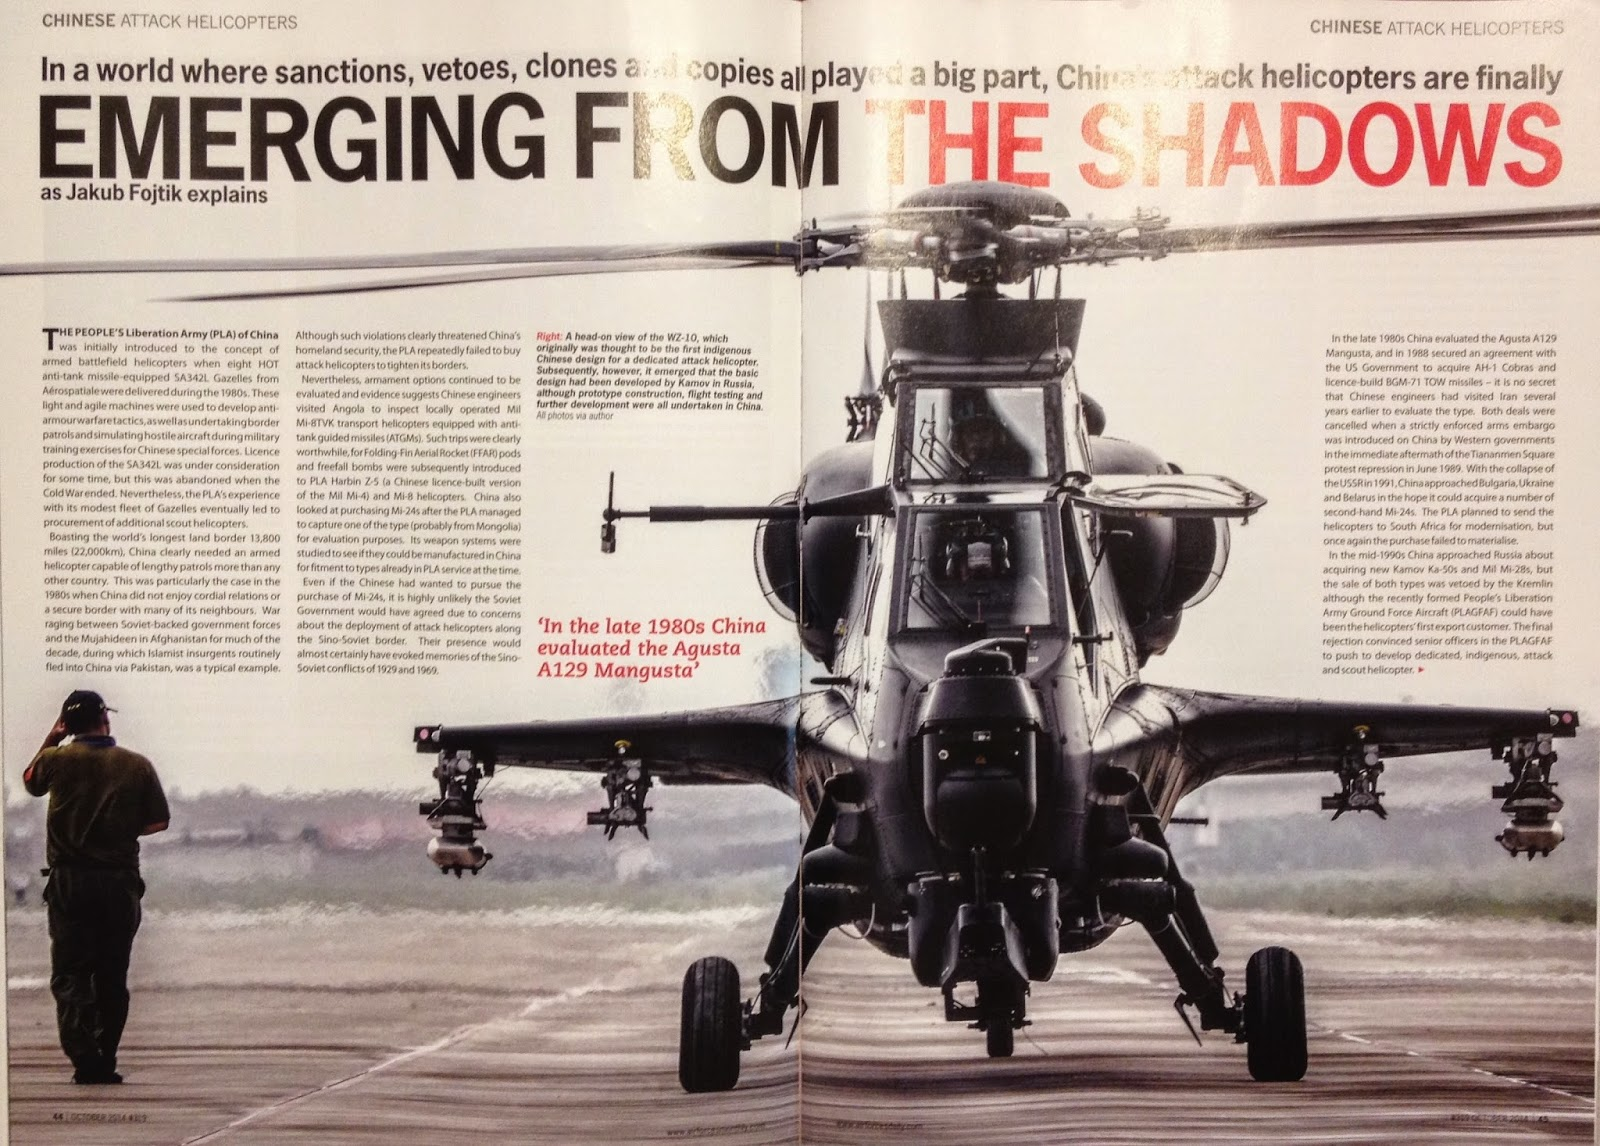 Chinese Attack Helicopters